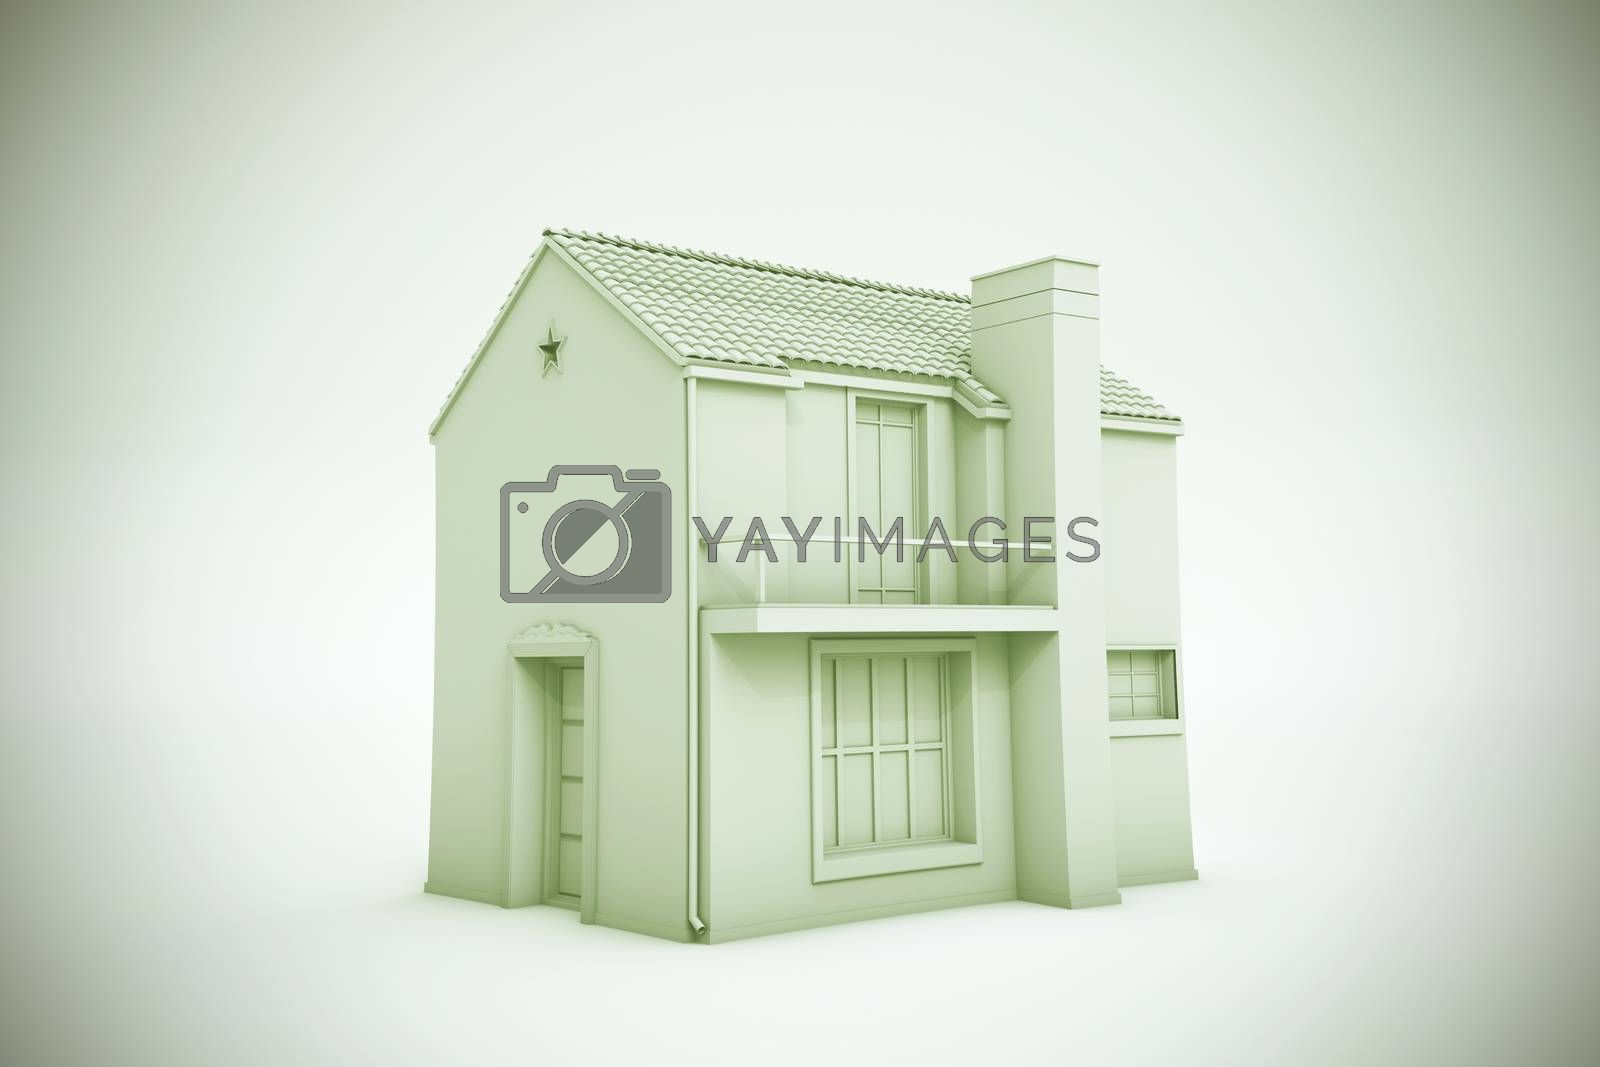 simple house model isolated on white background